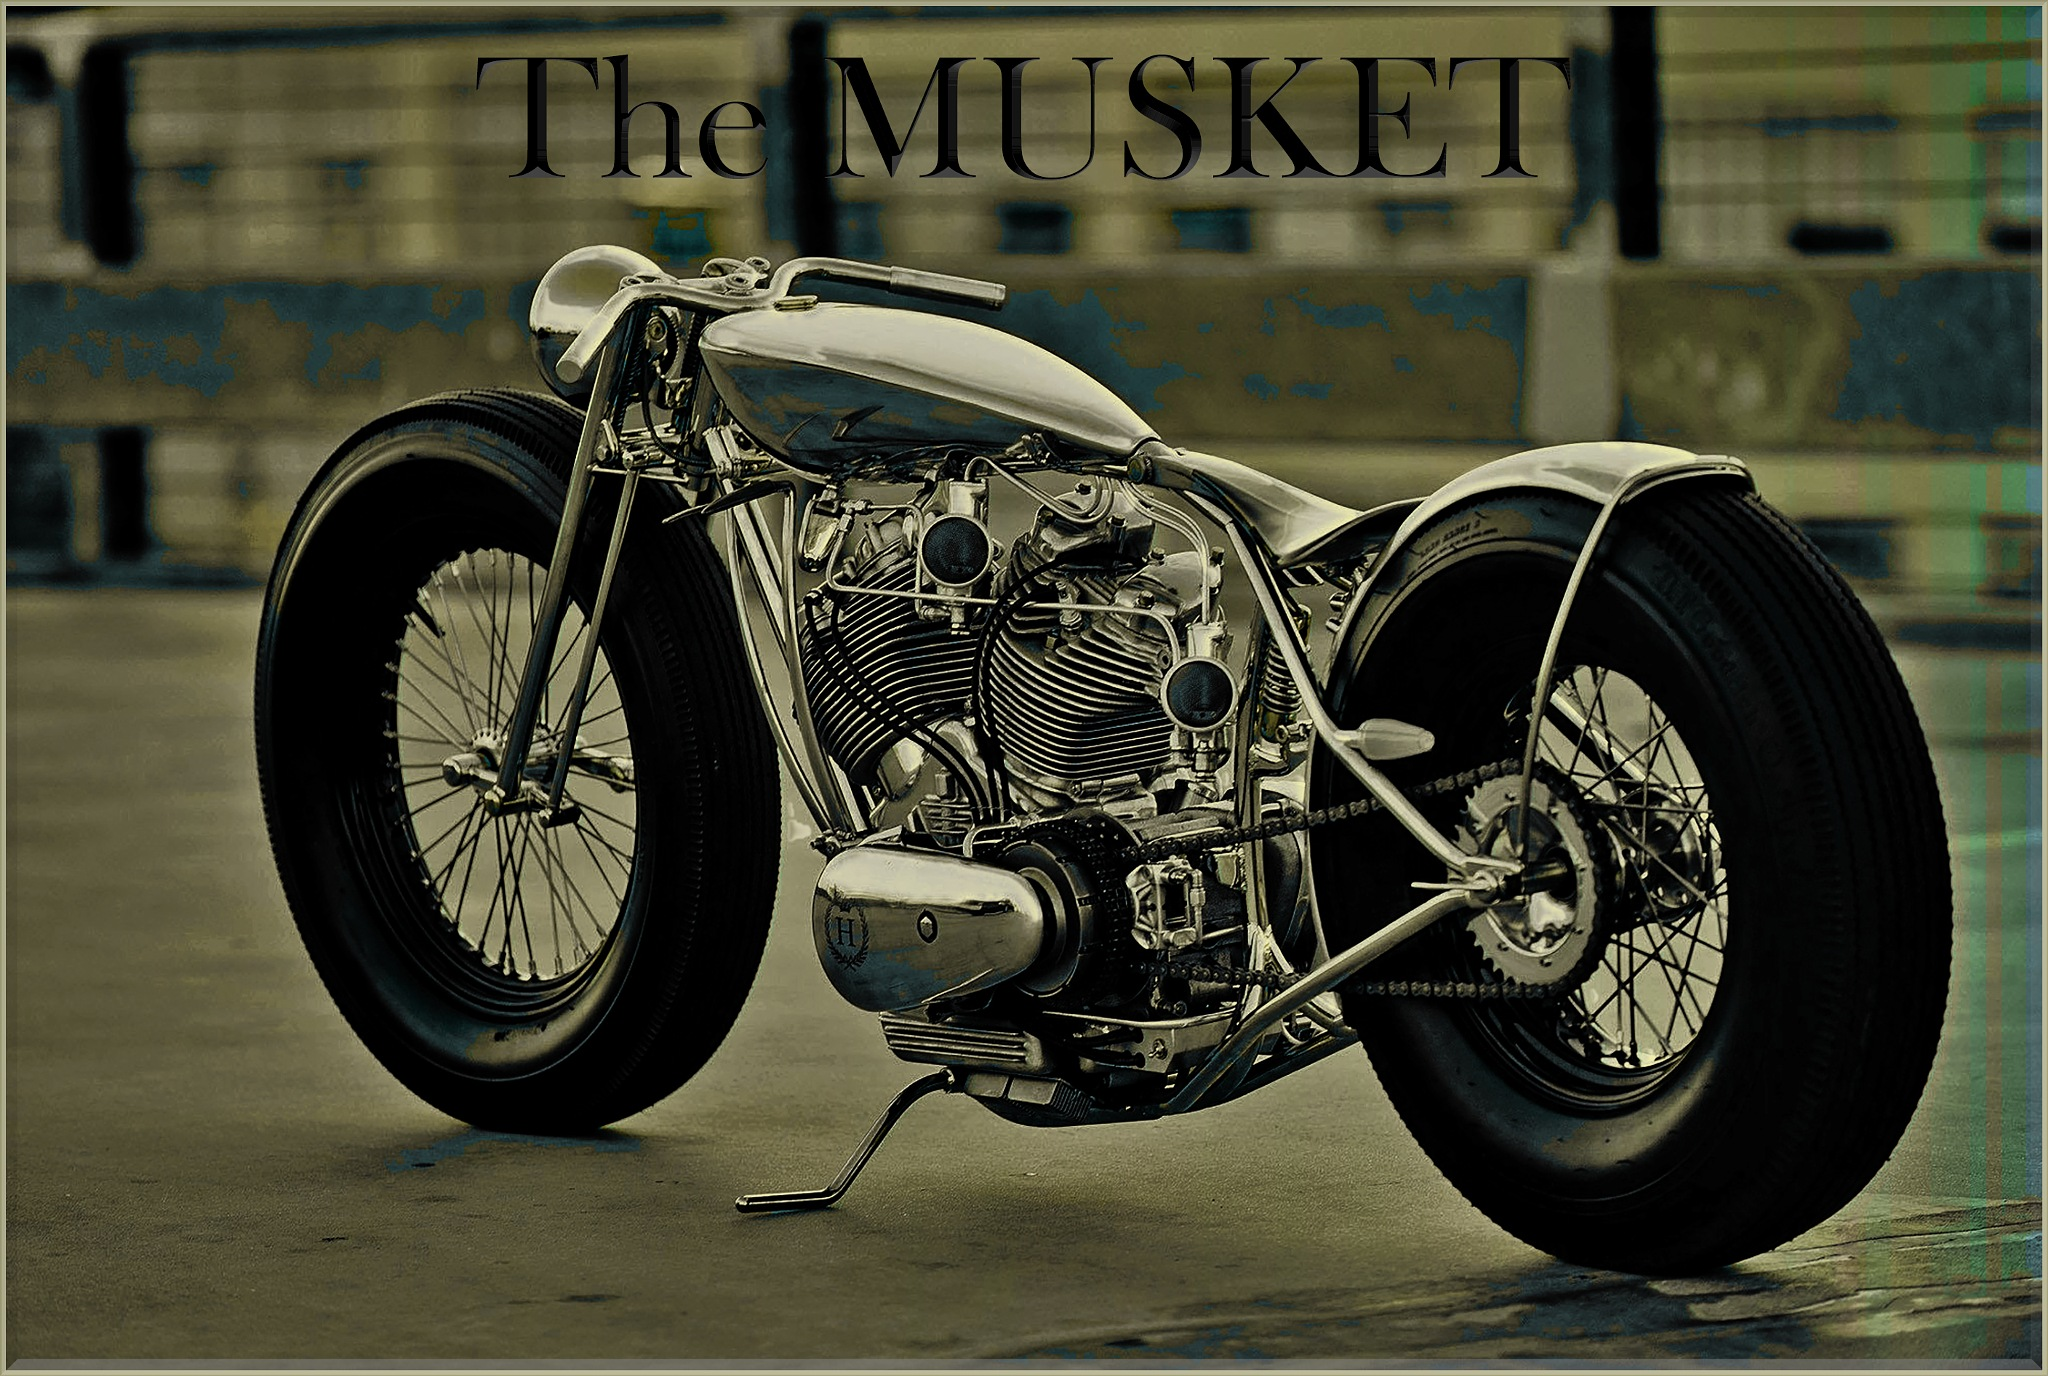 The MUSKET by Mikael Rennerhorn